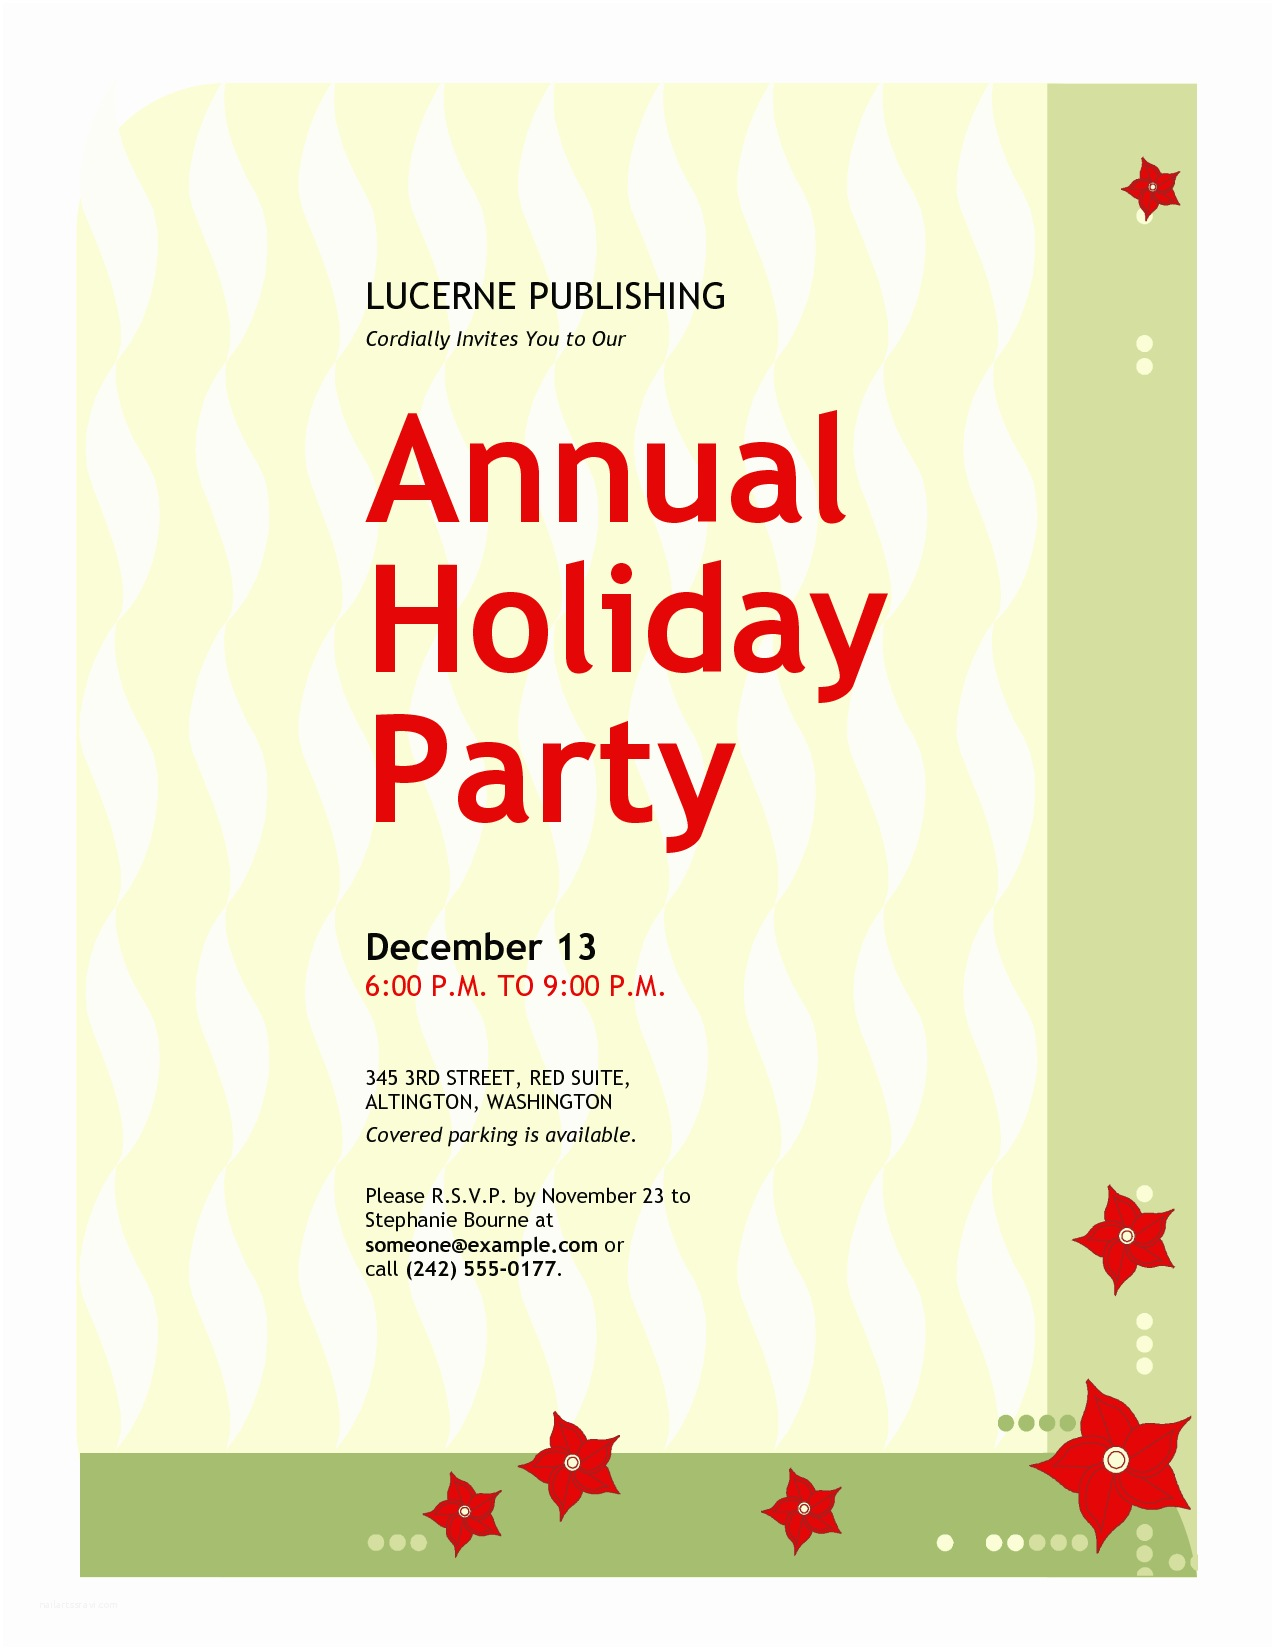 Company Holiday Party Invitation Pany Holiday Party Invitations